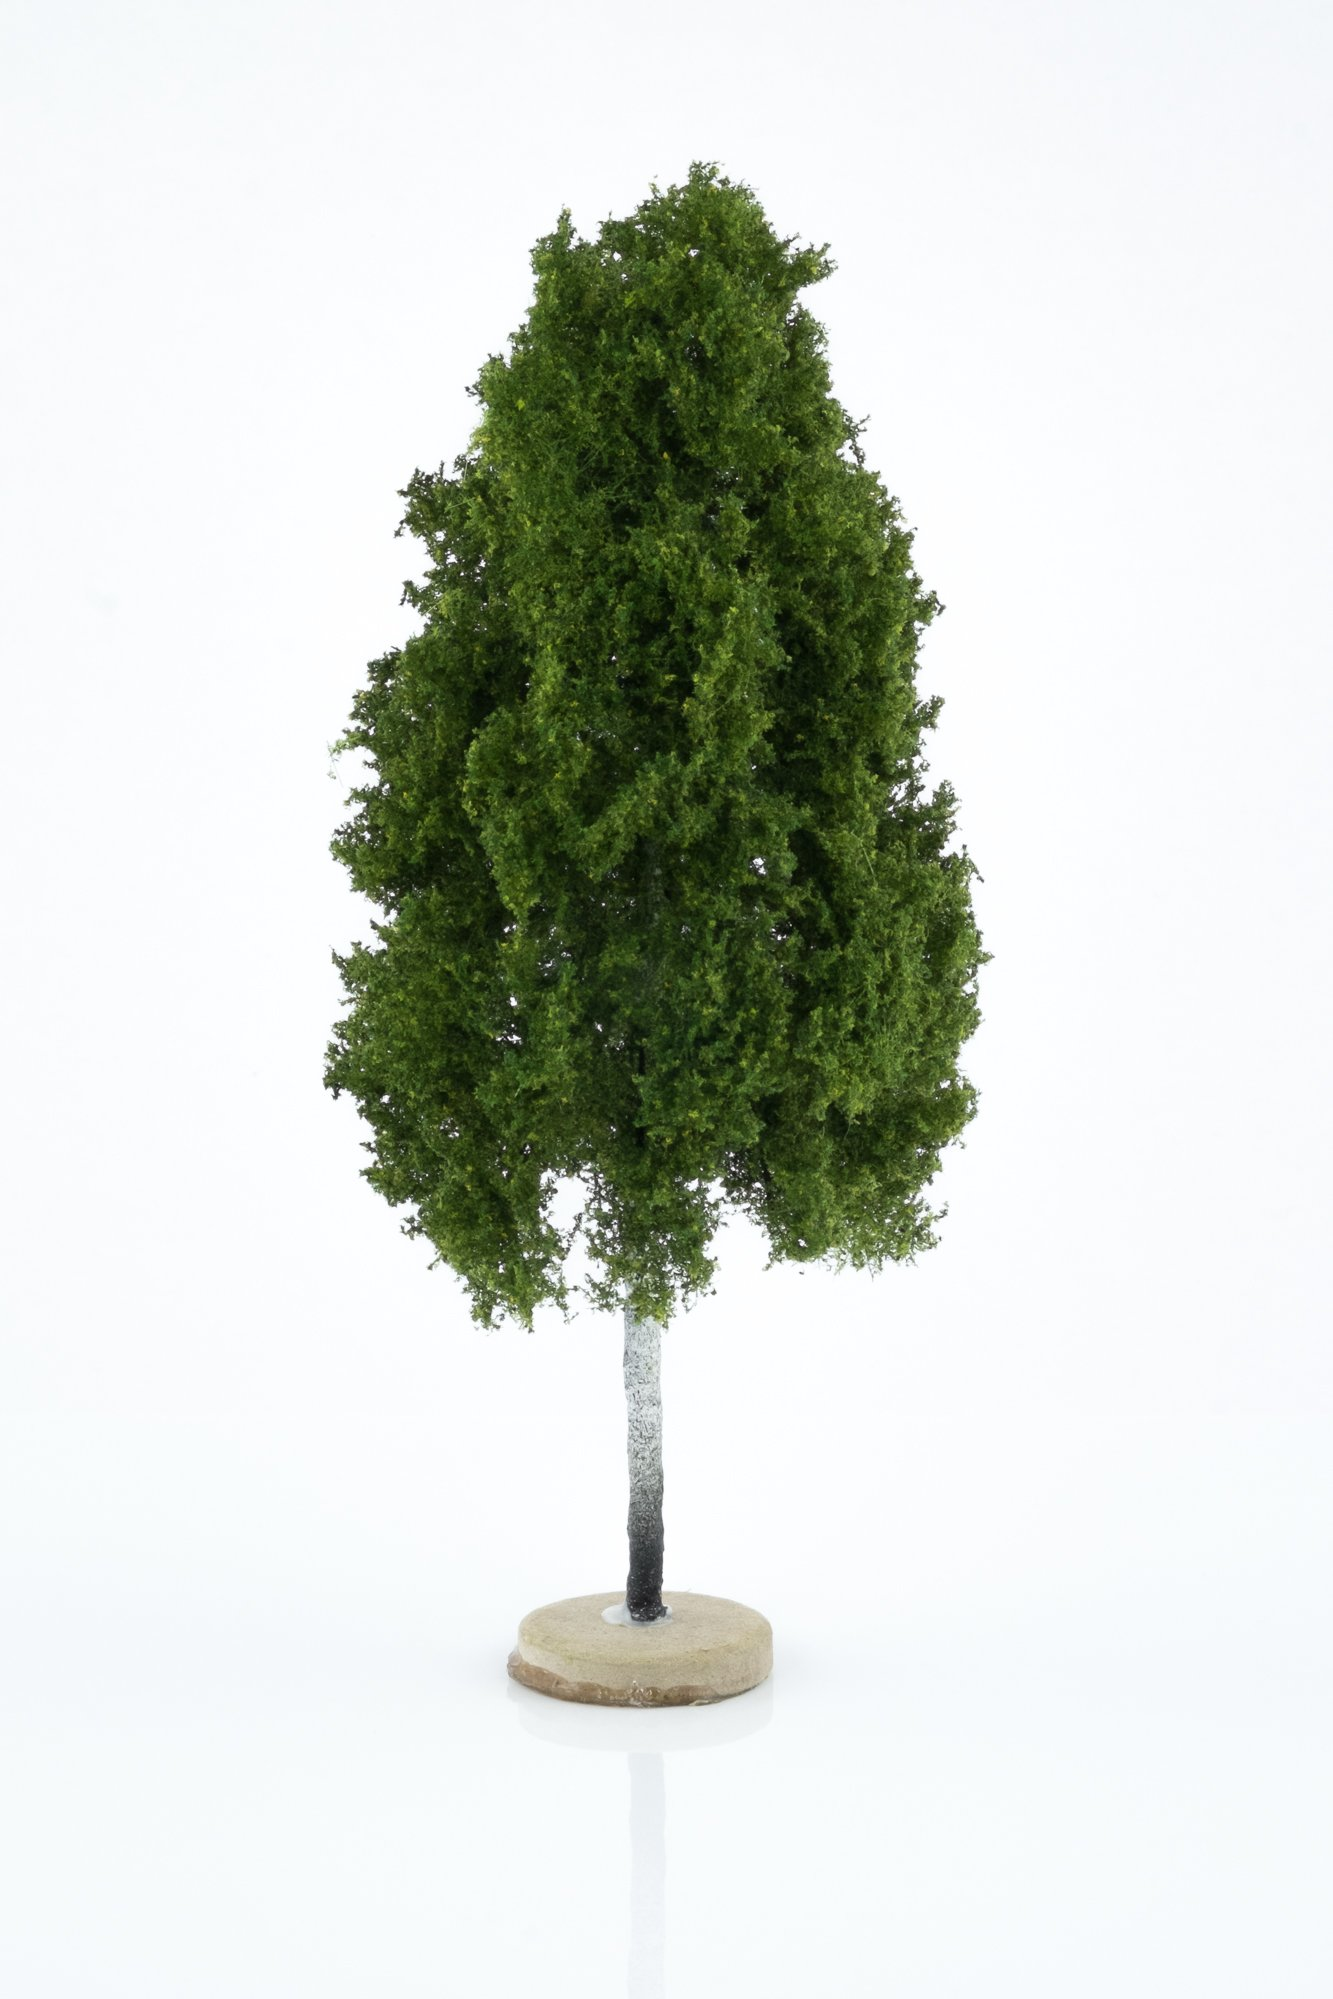 Hand-made, green, birch tree model. Size between 18 and 20 cm. Made from high quality model supplies by Primo Models.